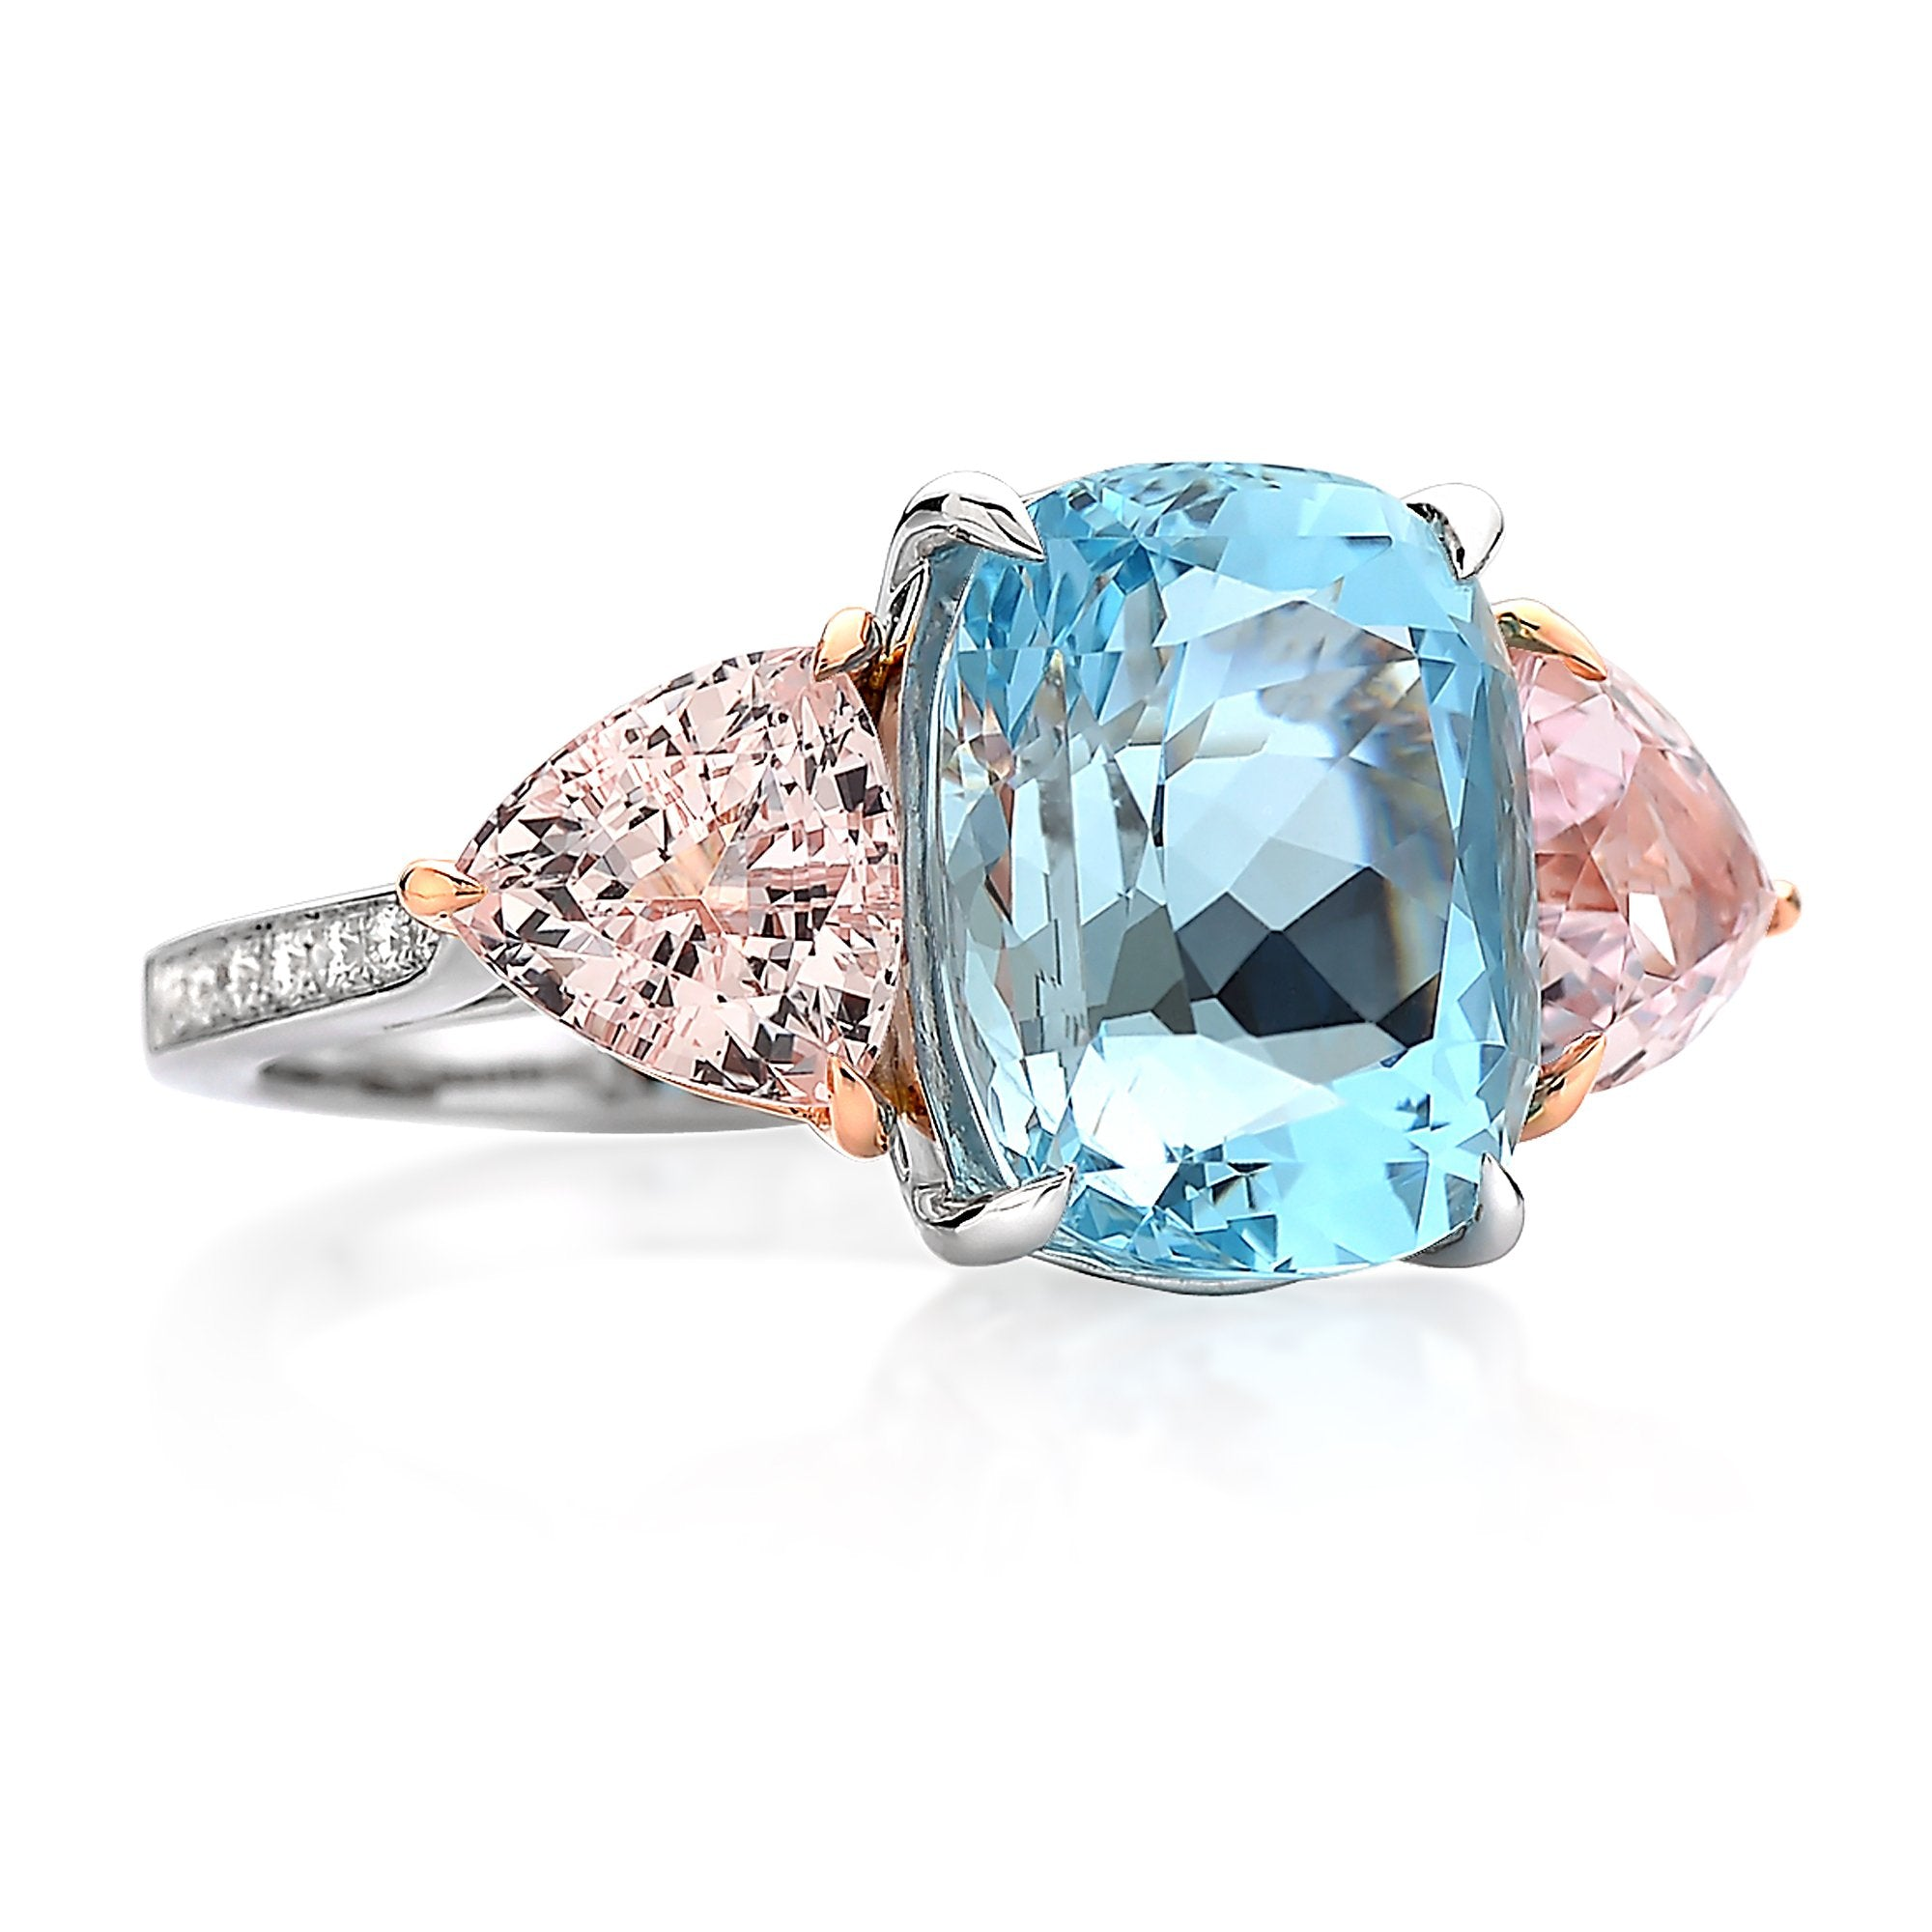 91eb1398e 18kt Gold Aquamarine, Morganite and Diamond Ring - Paolo Costagli ...